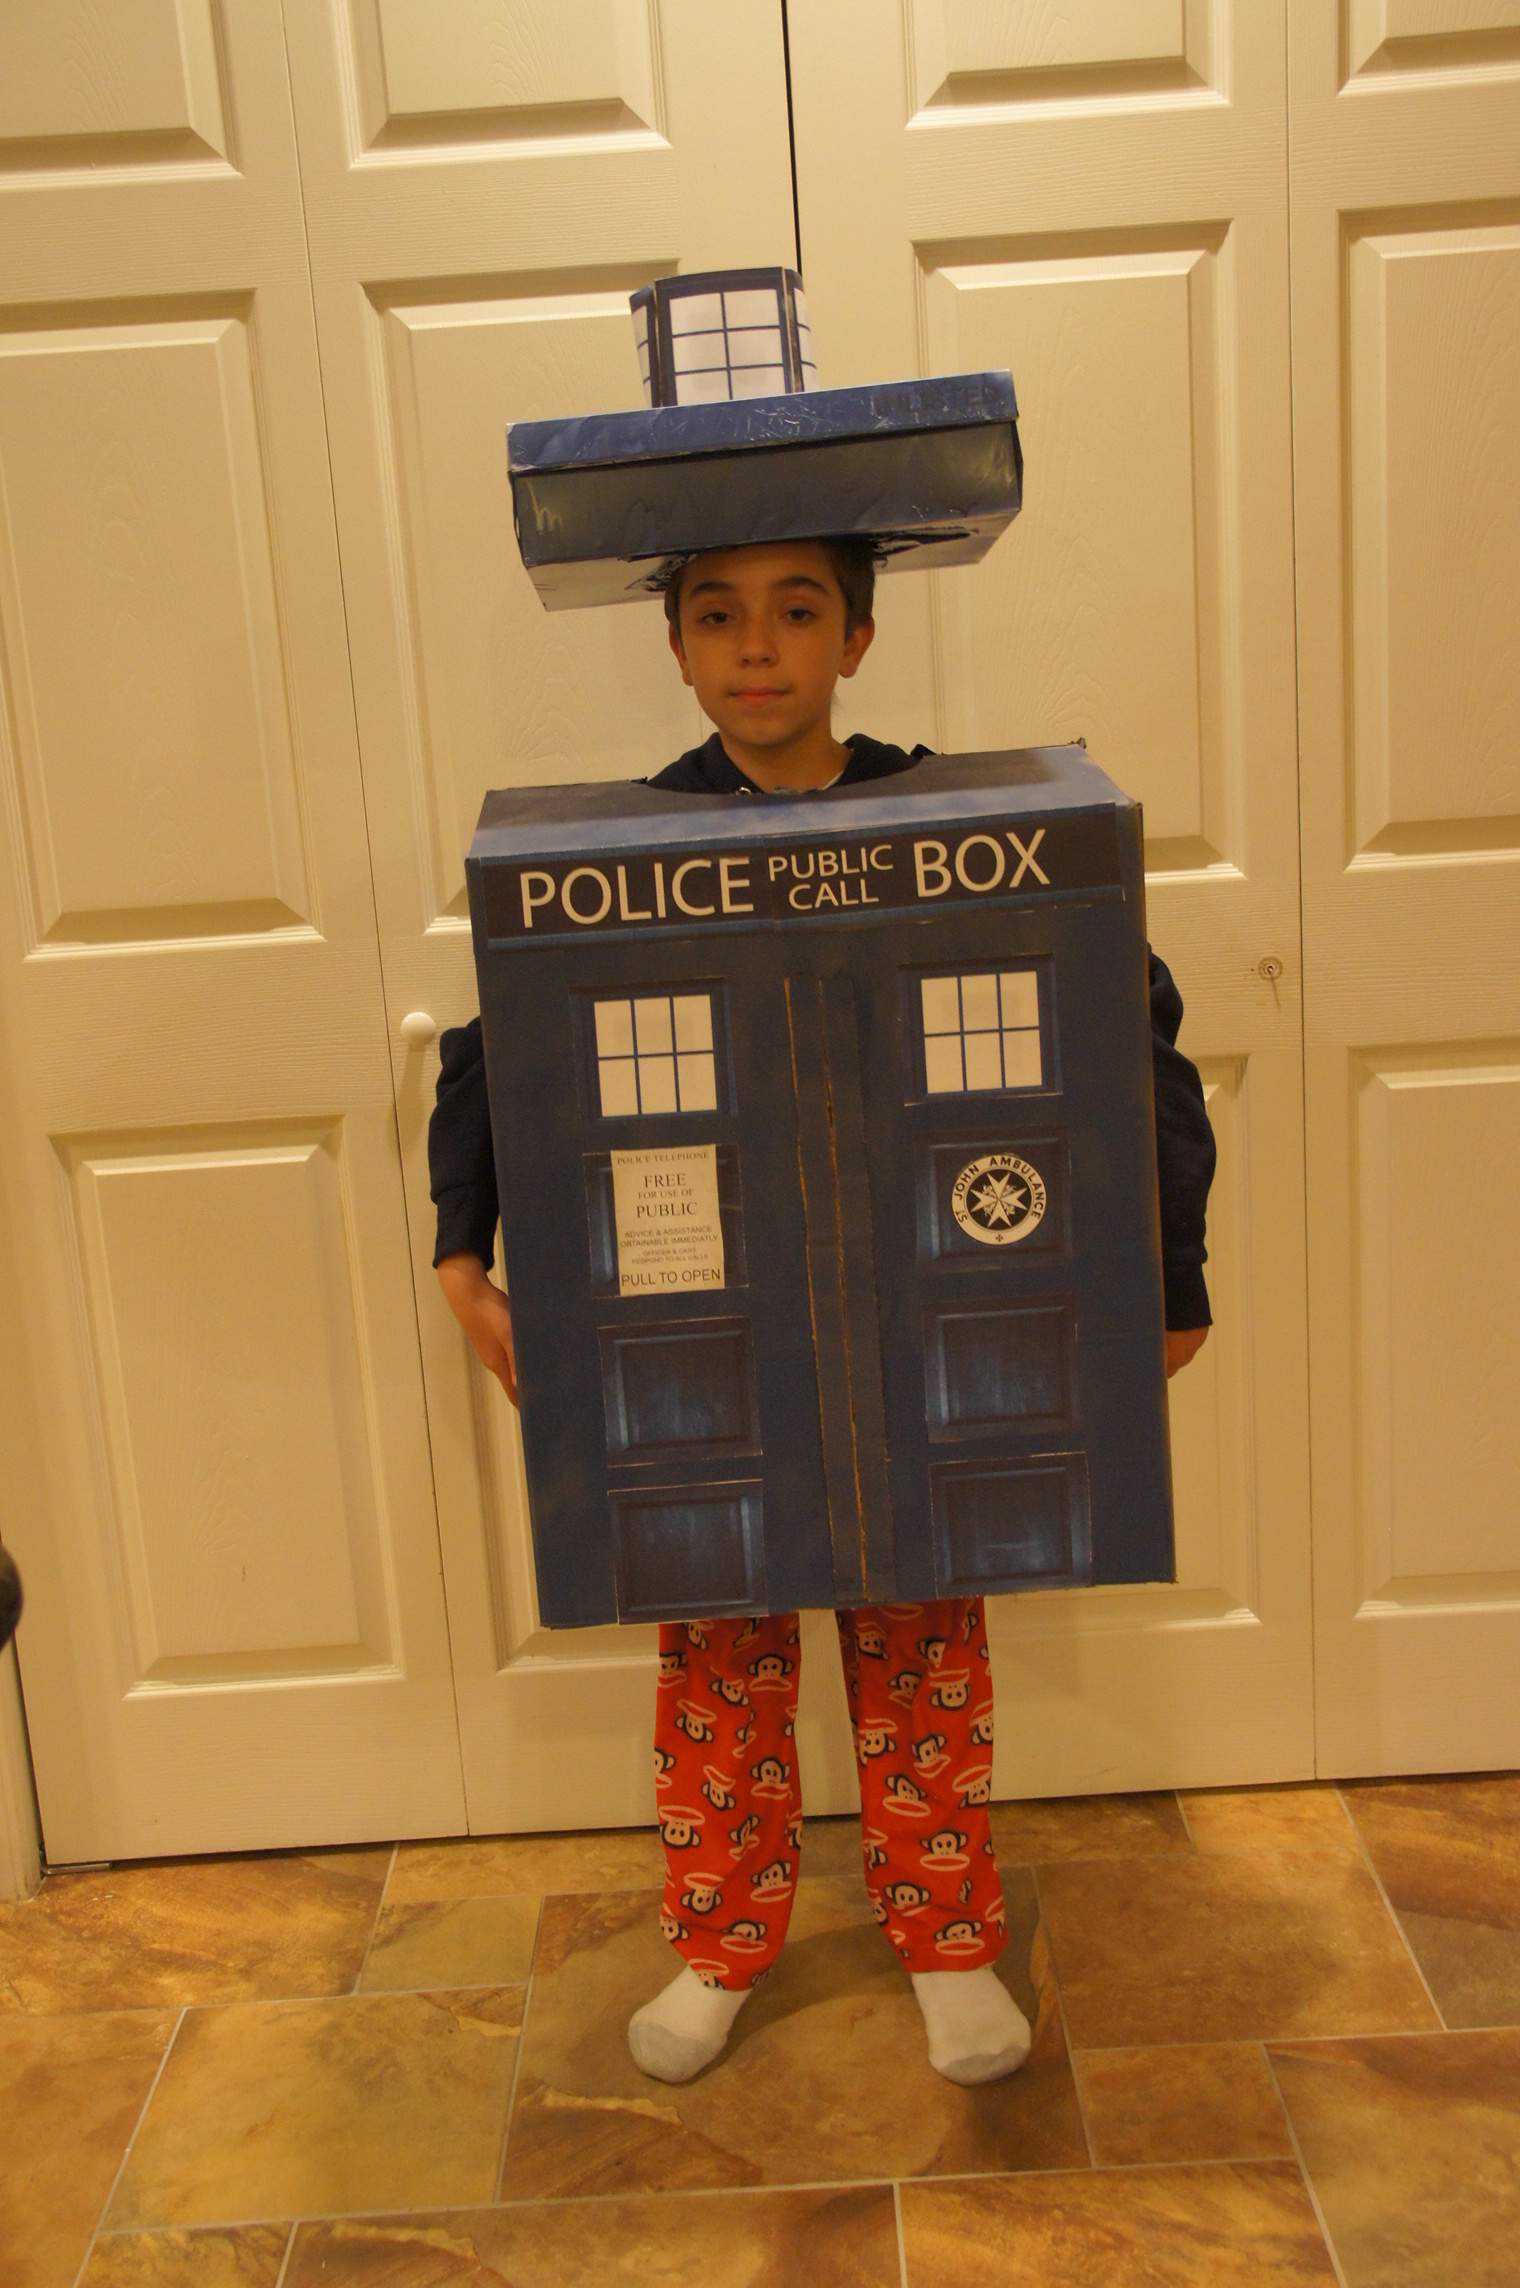 Tardis Costume  sc 1 st  Bits and Bytes & Halloween 2013: Time Travel with a Dr. Who Tardis Costume | Bits and ...